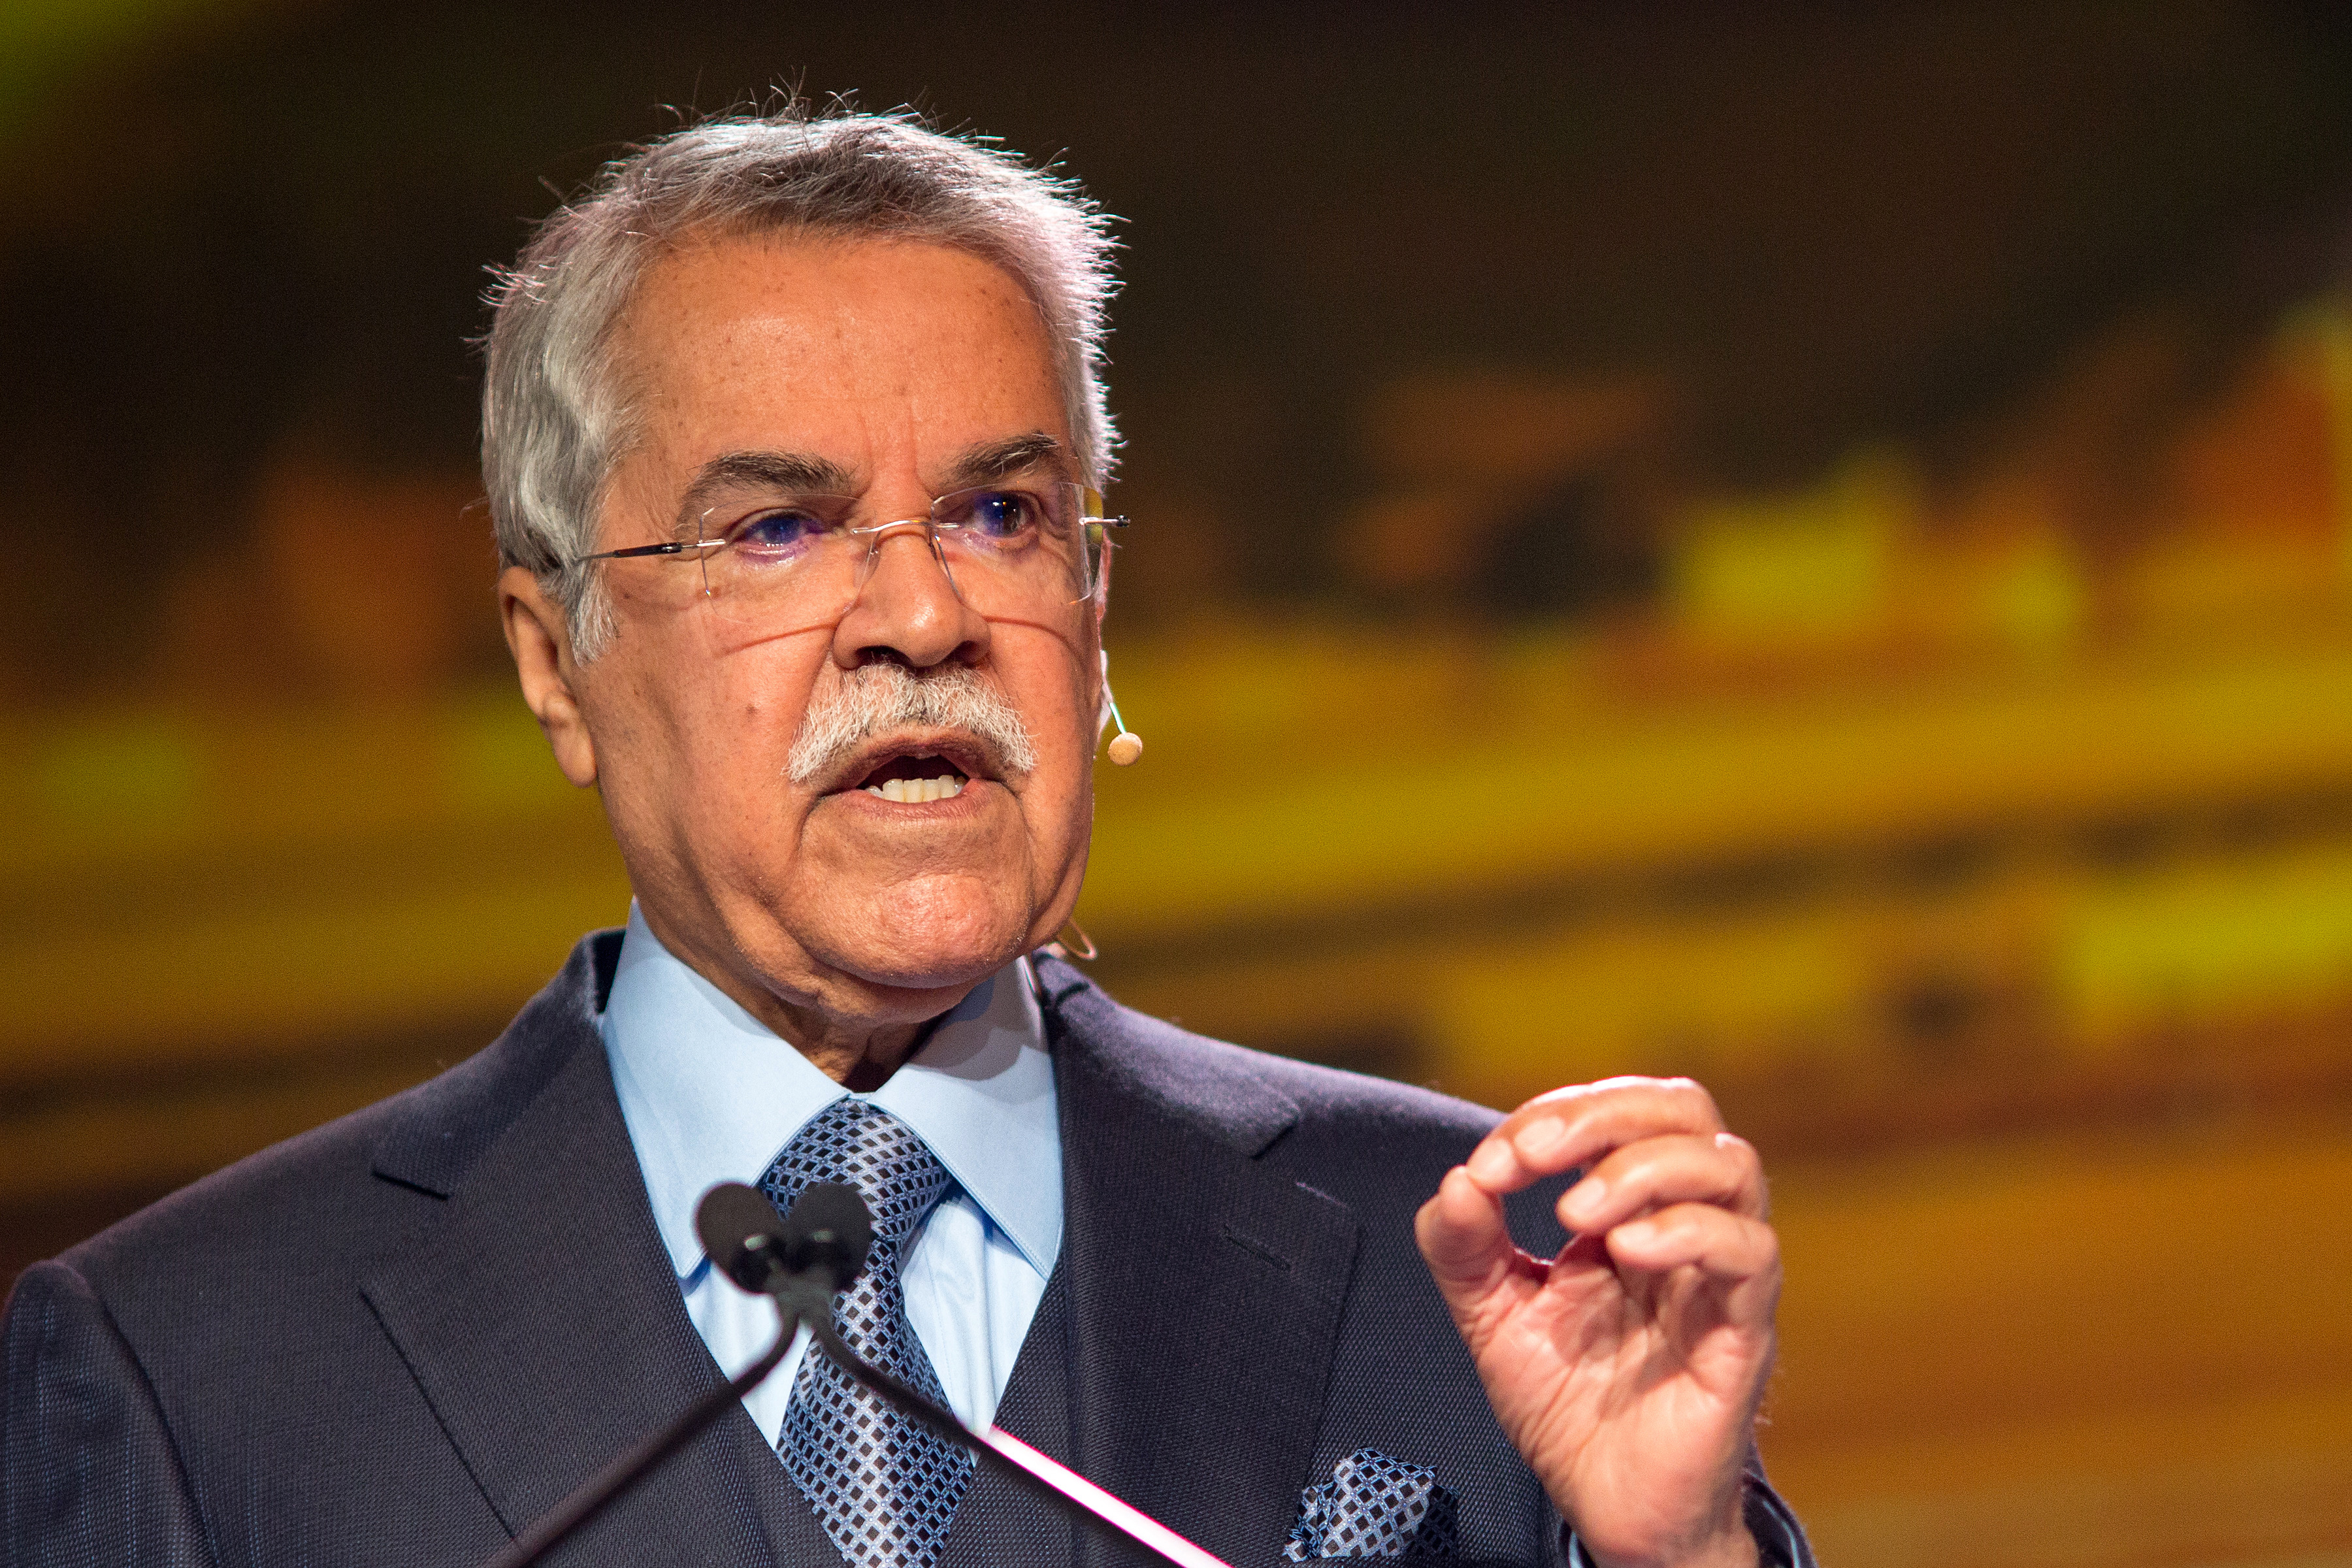 Ali Bin Ibrahim al-Naimi, Saudi Arabia's petroleum and mineral resources minister, speaks during the 2016 IHS CERAWeek conference in Houston on Feb. 23, 2016.